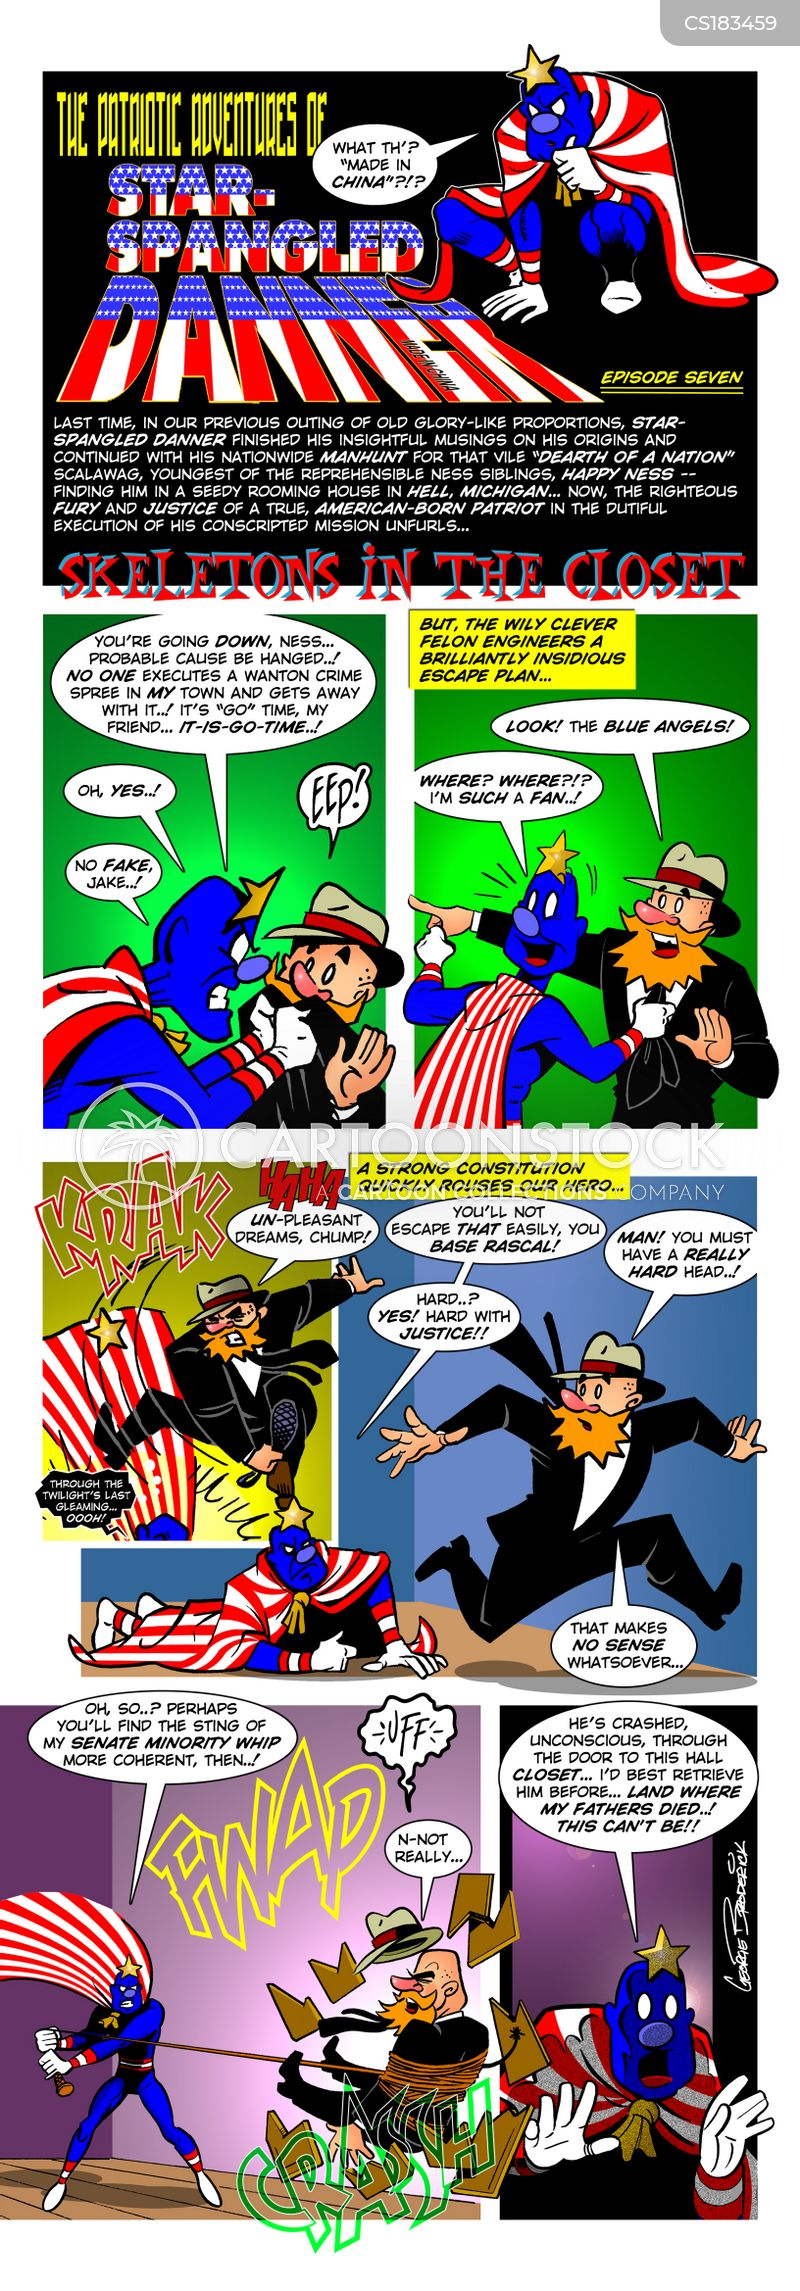 american hero cartoon